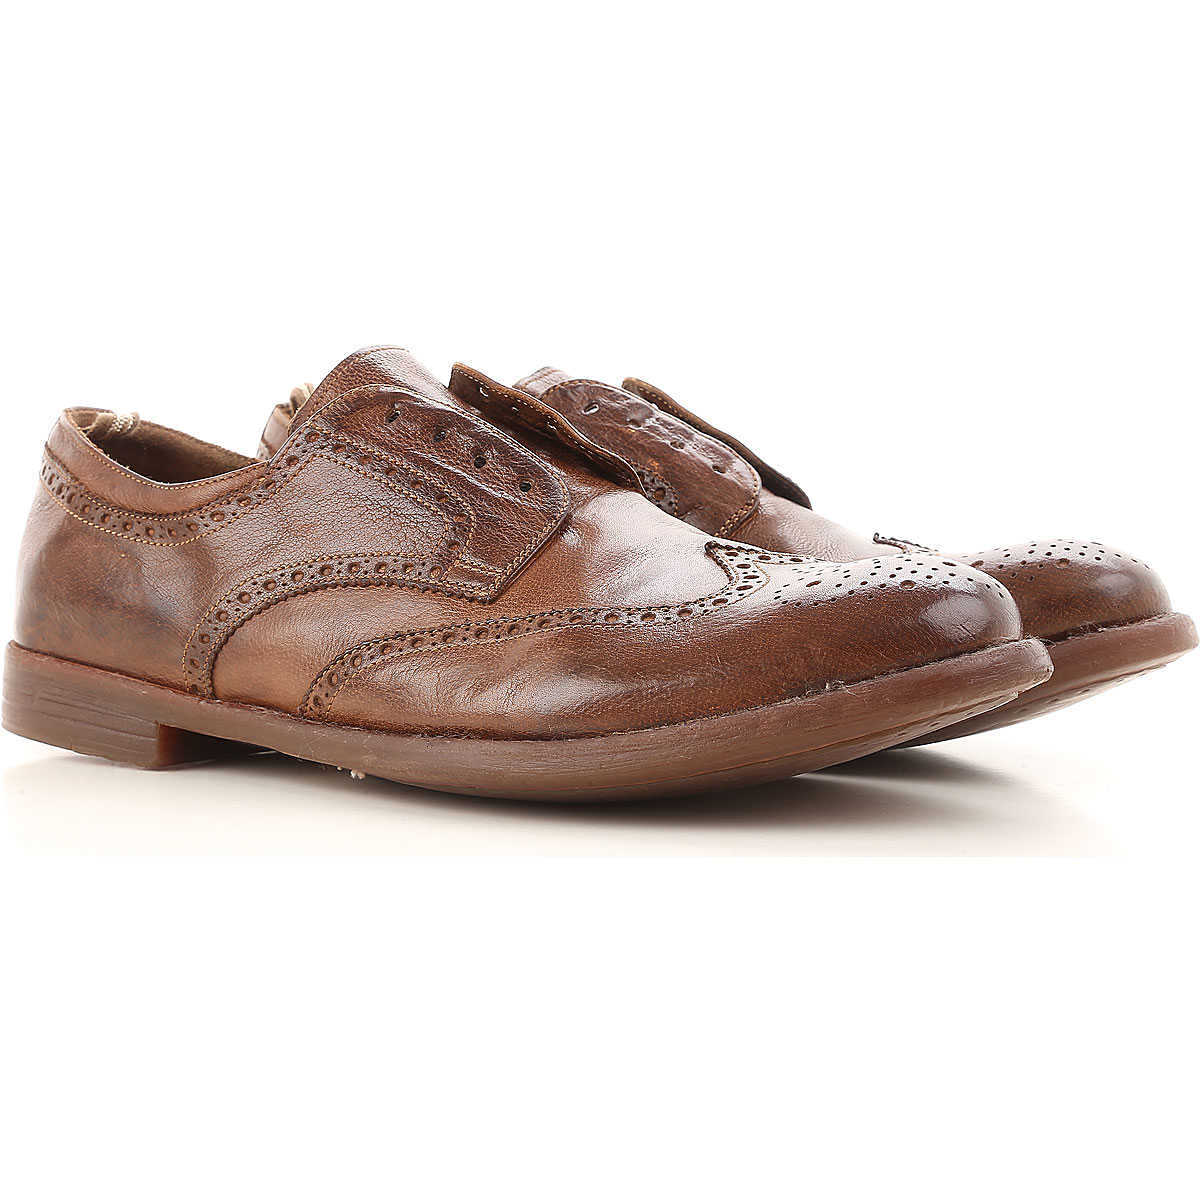 Officine Creative Lace Up Shoes for Men Oxfords Derbies and Brogues On Sale DK - GOOFASH - Mens FORMAL SHOES